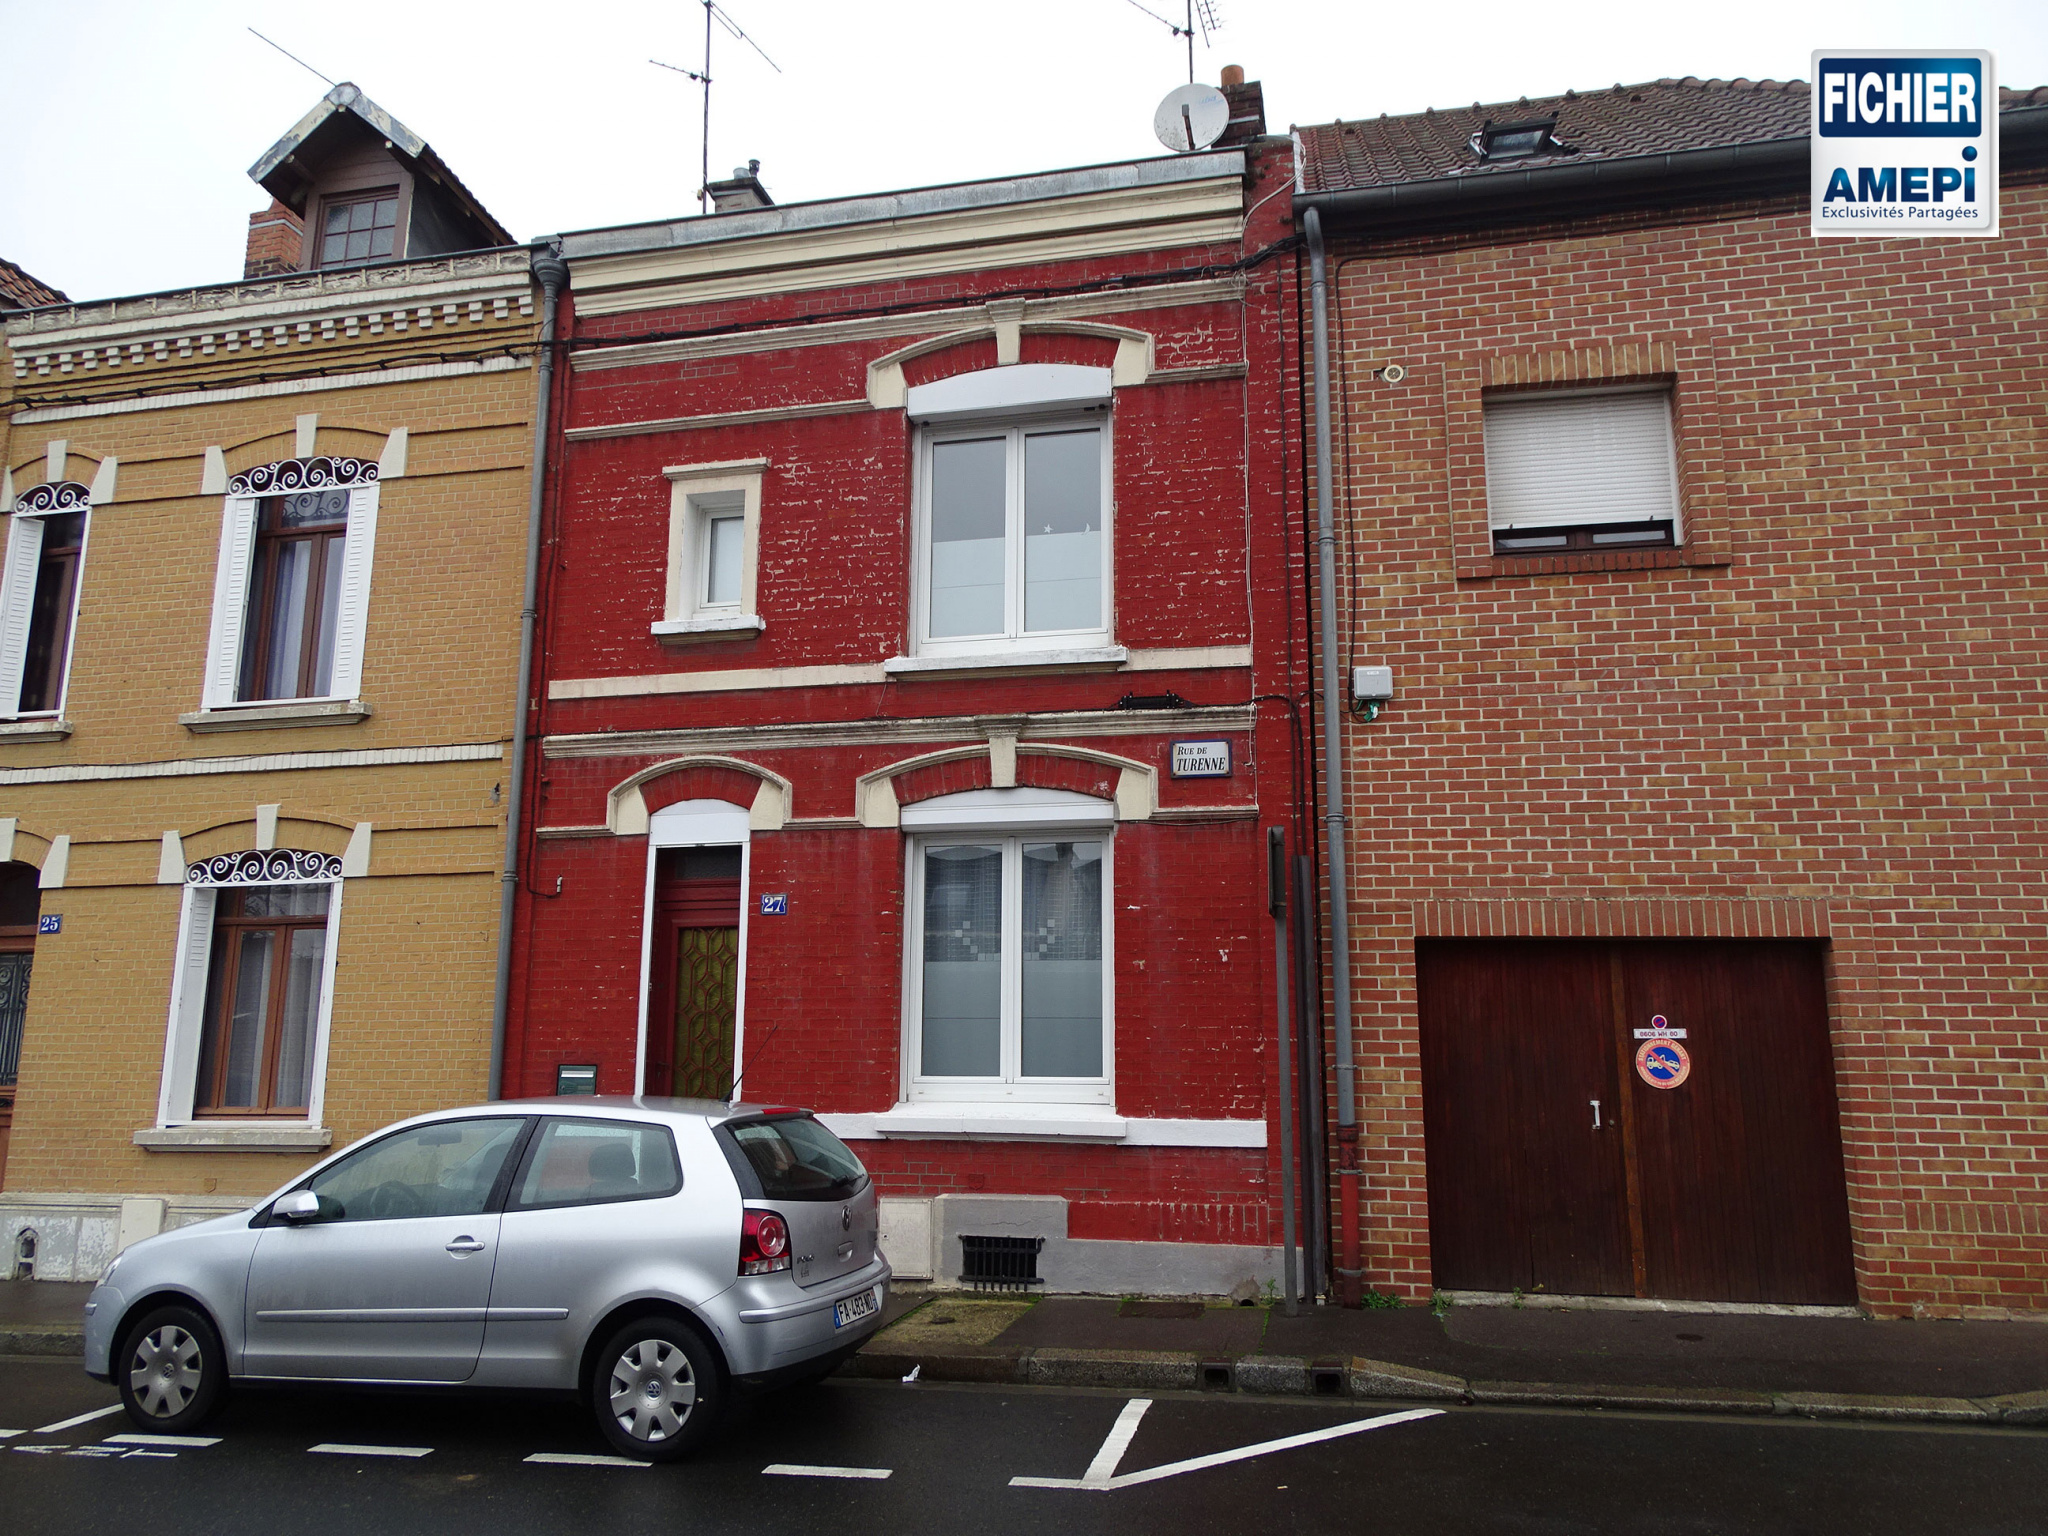 EXCLUSIF AMIENS St PIERRE MAISON 4 CHAMBRES